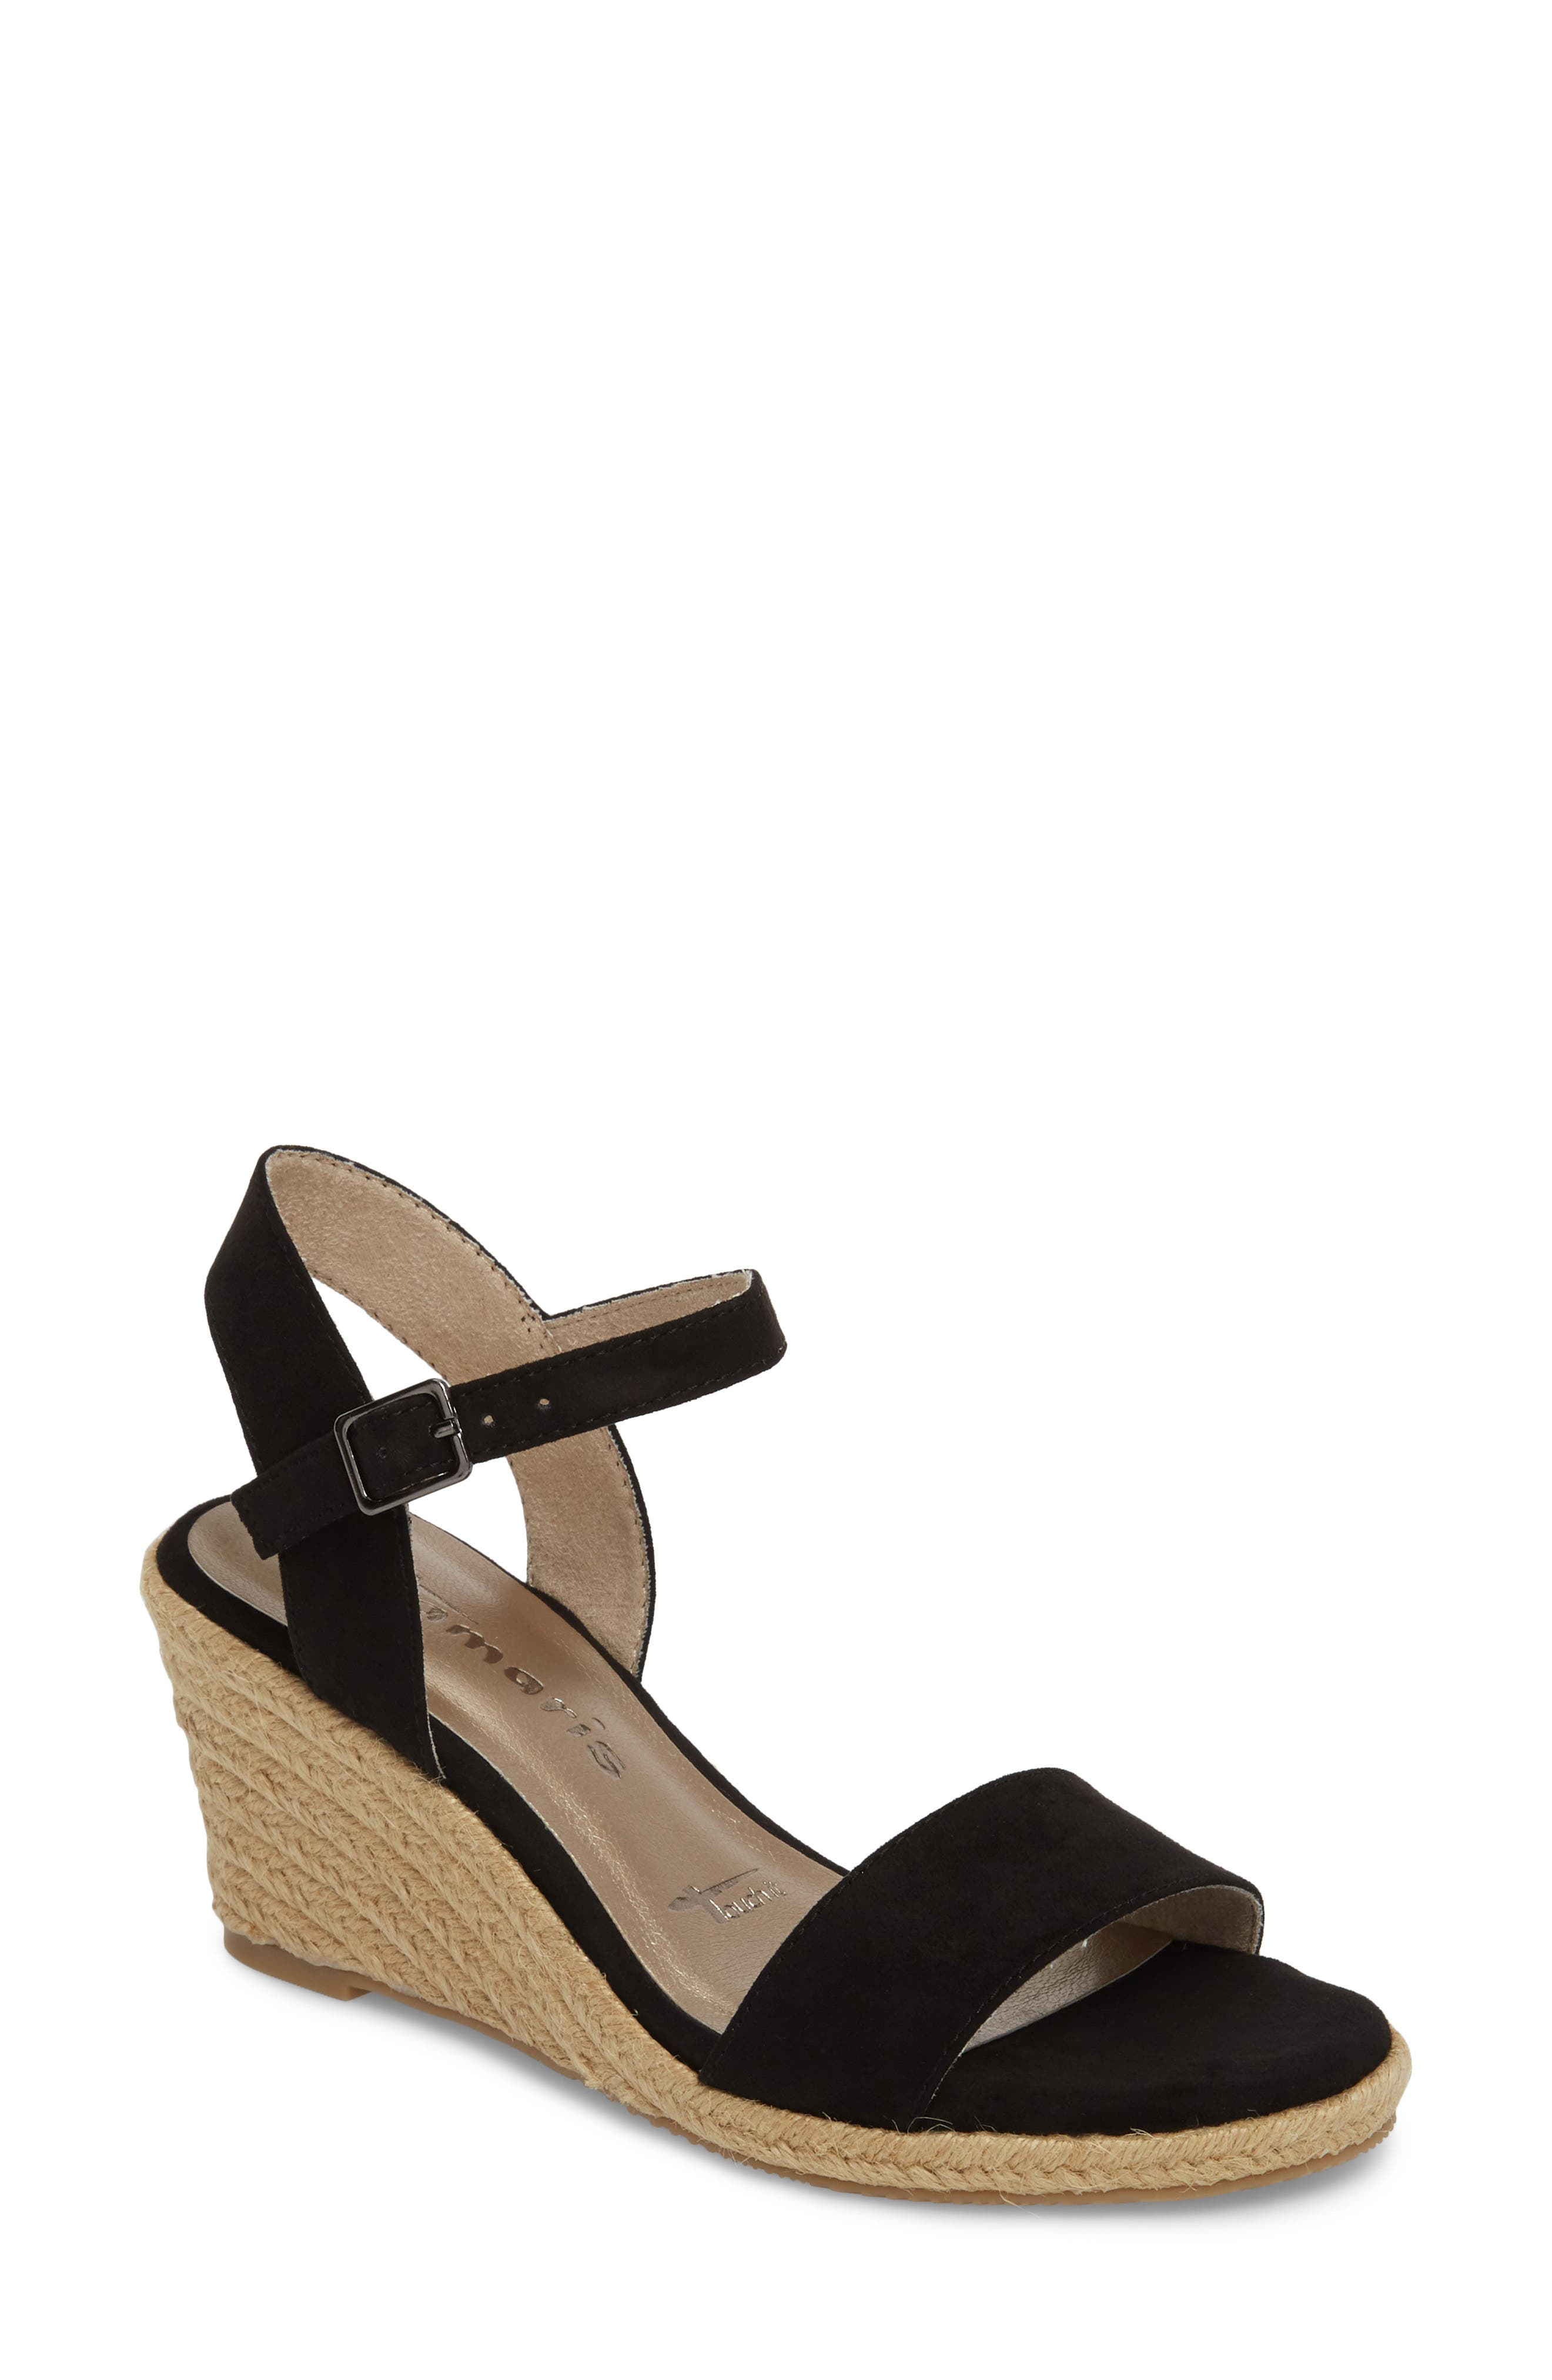 TAMARIS Livia Espadrille Wedge Sandal, Main, color, 002